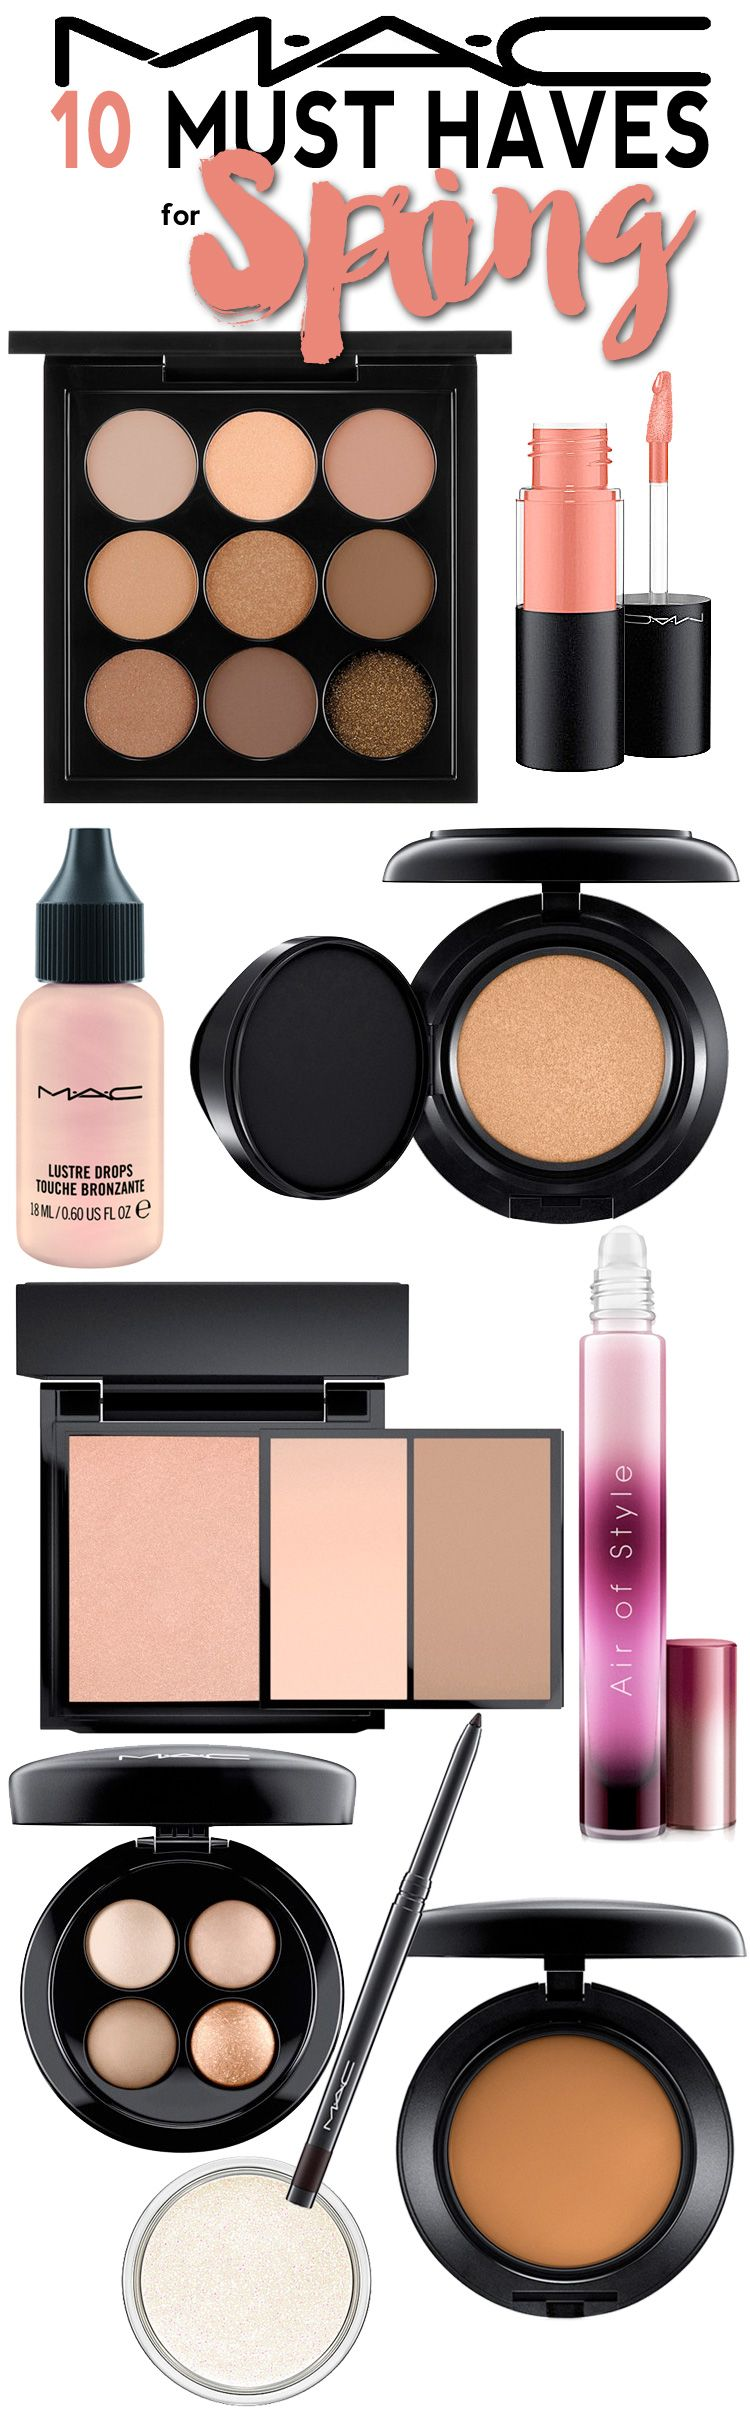 The Best 10 Mac Cosmetics Products For Spring Beautiful Makeup Search Smokey Eye Makeup Best Makeup Products Mac Must Haves